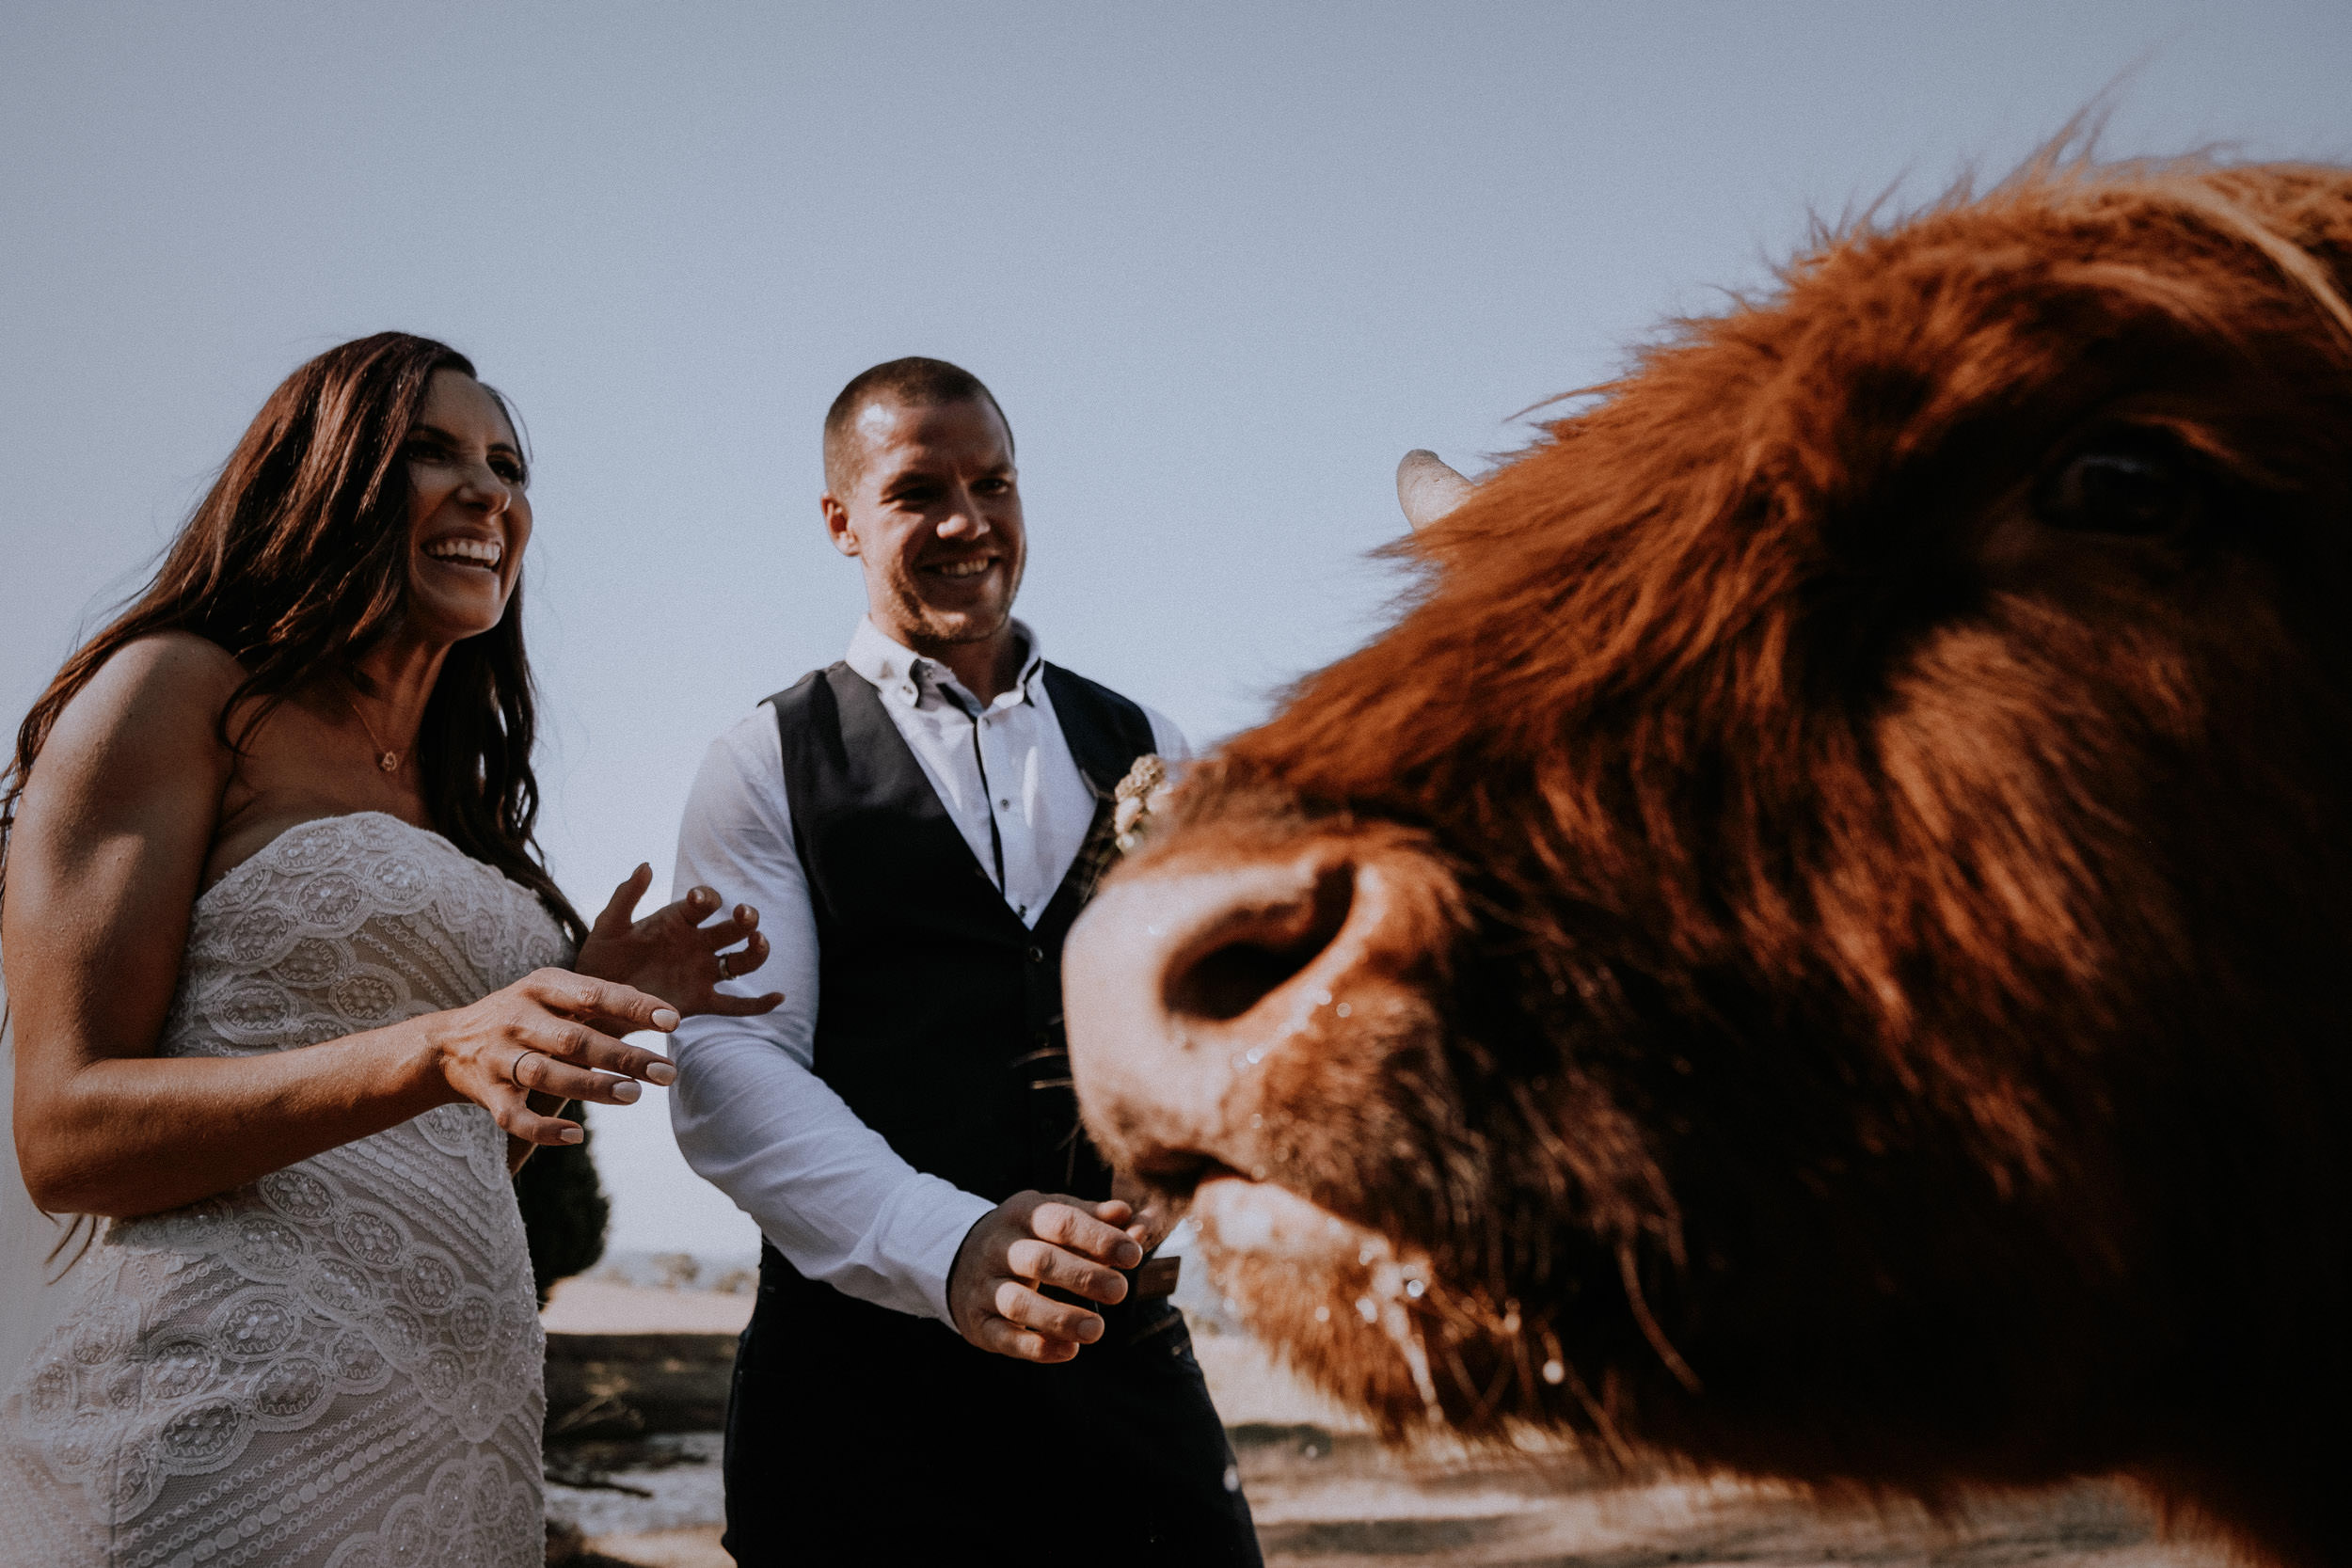 Bride and groom hang out with the highland cows at Seclusions wedding venue, photographed by Kings & Thieves Blue Mountains Wedding Photography